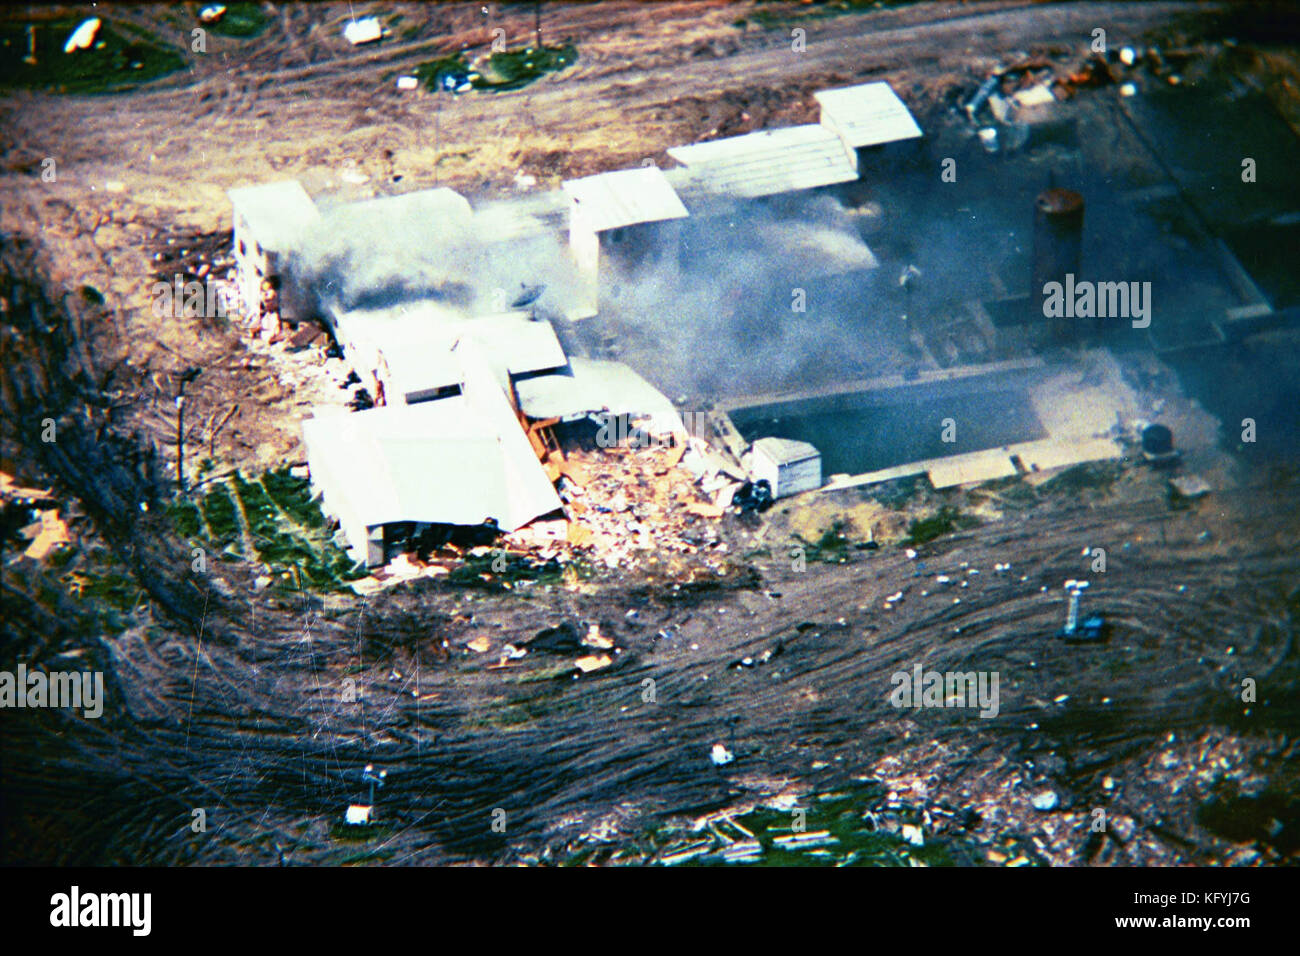 McVeigh and Nichols cited the federal government's actions against the Branch Davidian compound in the 1993 Waco Stock Photo